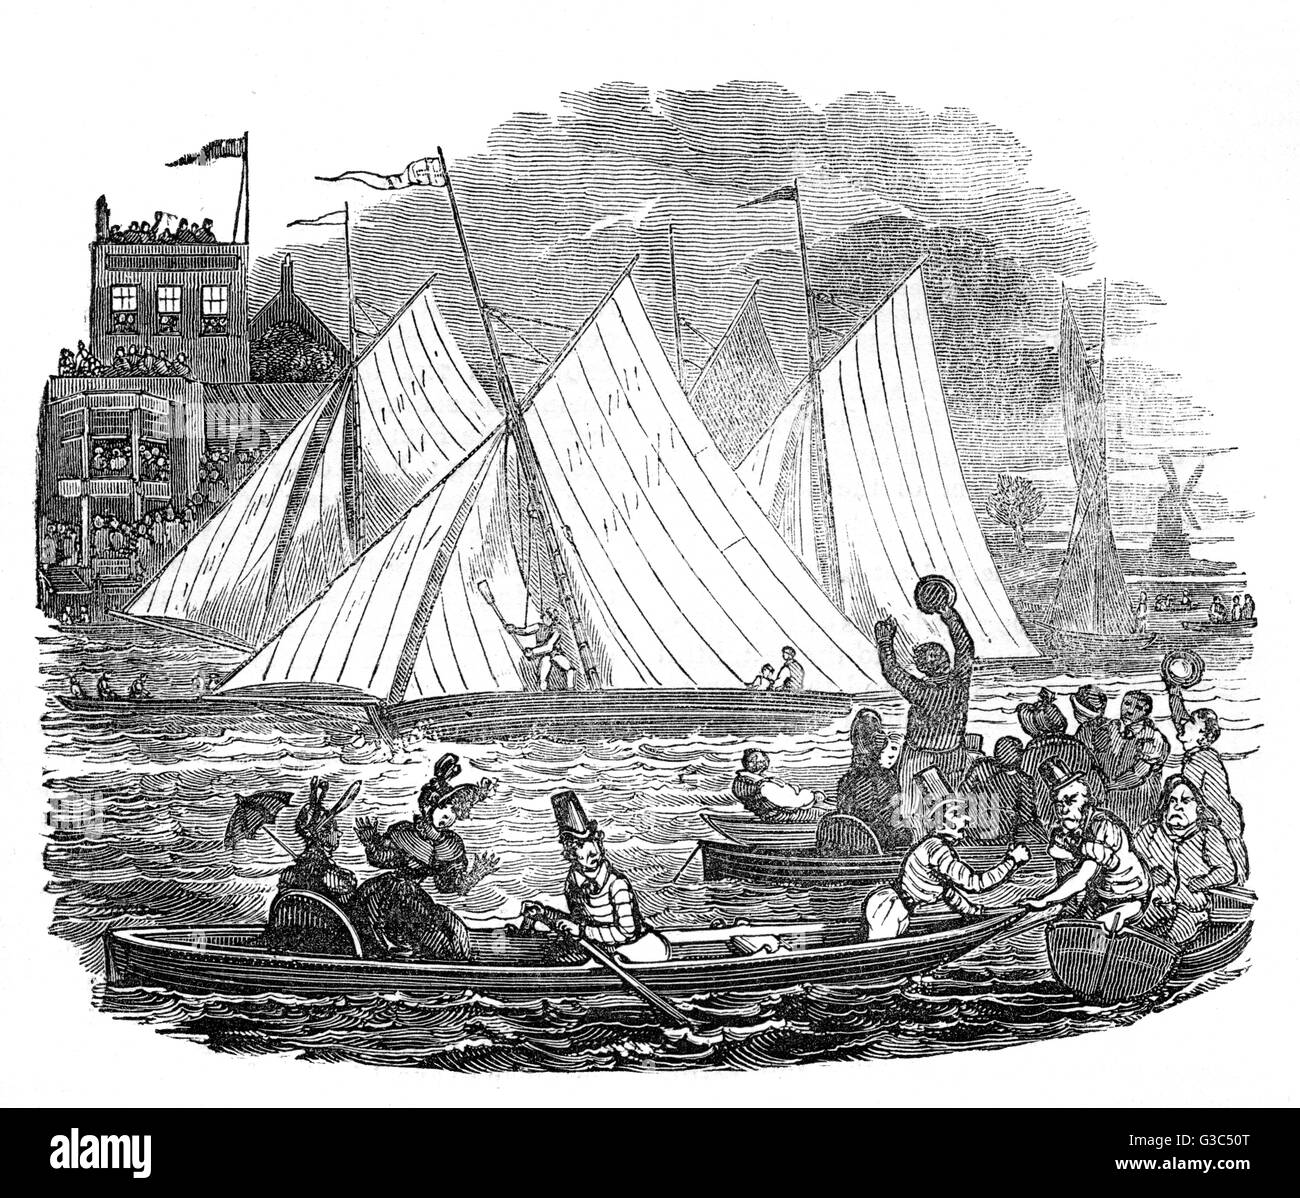 Illustration, people boating on the River Thames, with a sailing match in progress.      Date: 1832 - Stock Image